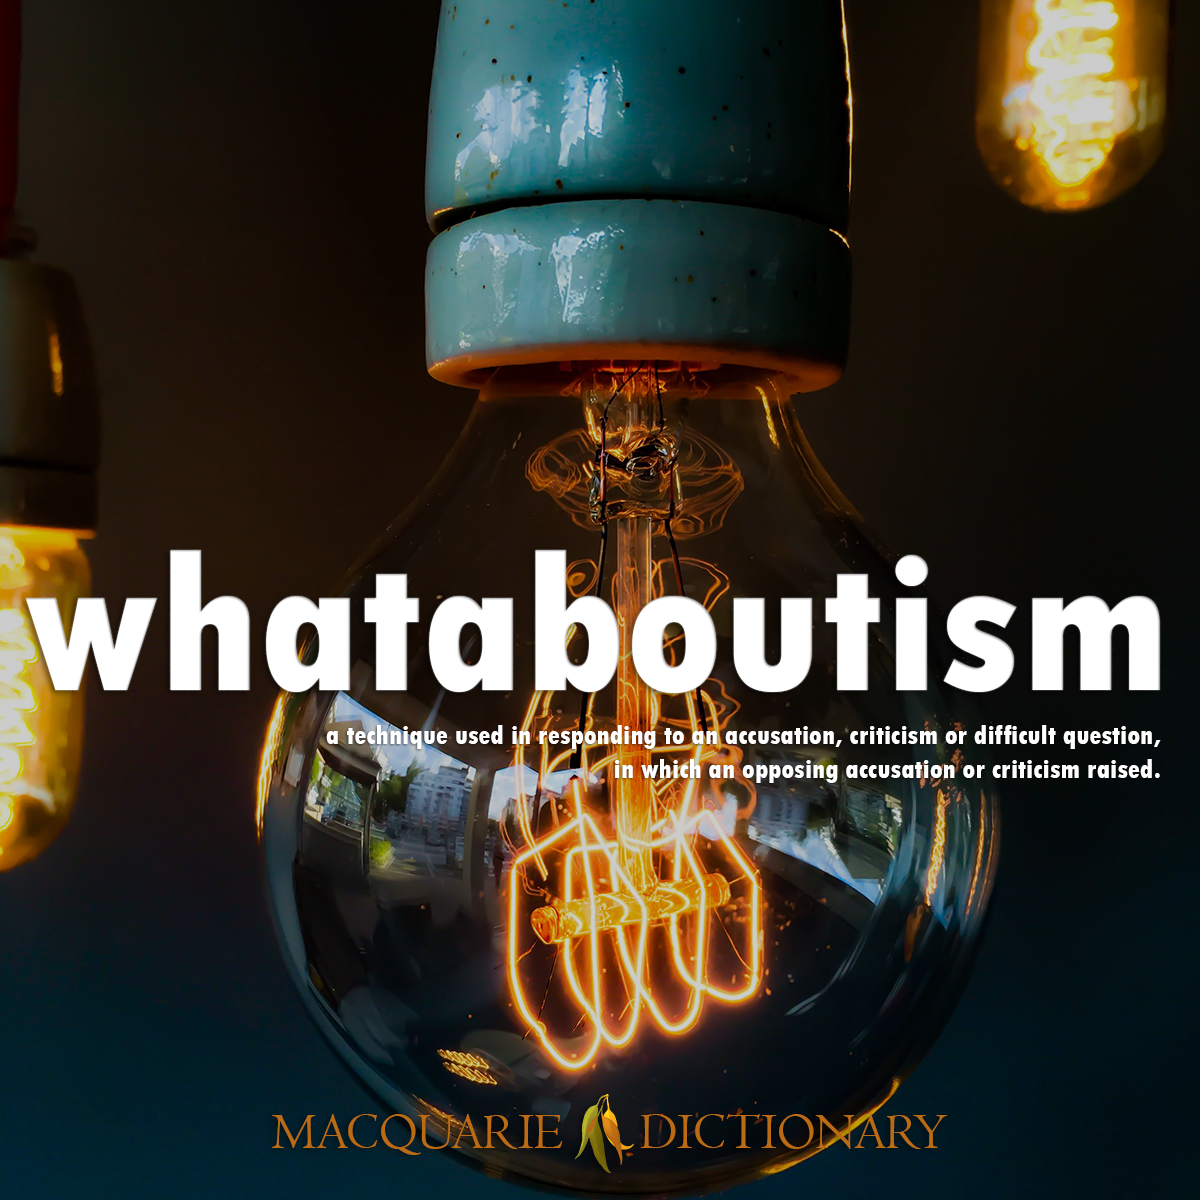 Image of Macquarie Dictionary Word of the Year whataboutism a technique used in responding to an accusation, criticism or difficult question, in which an opposing accusation or criticism raised.